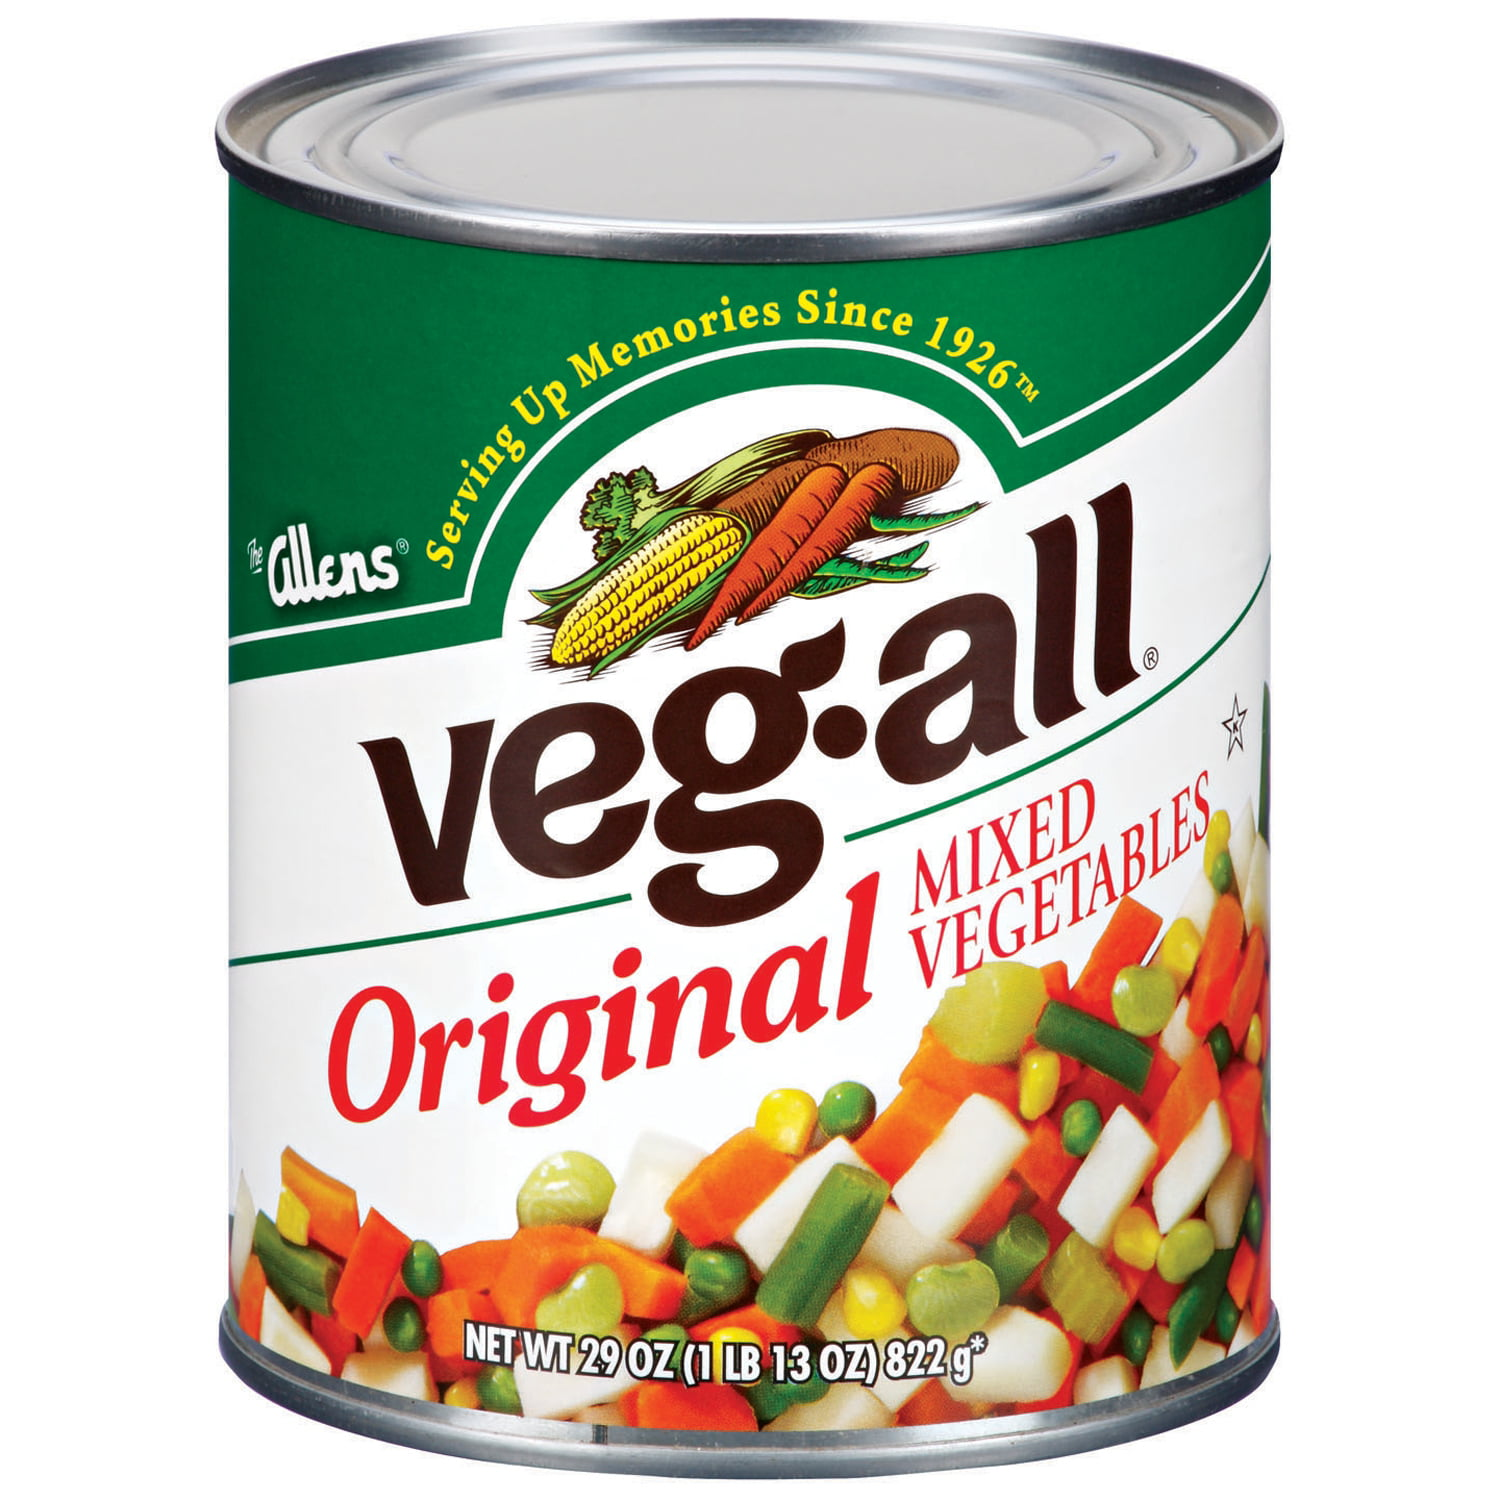 Veg-All Original Mixed Vegetables 29 Oz Can by Sager Creek Vegetable Company